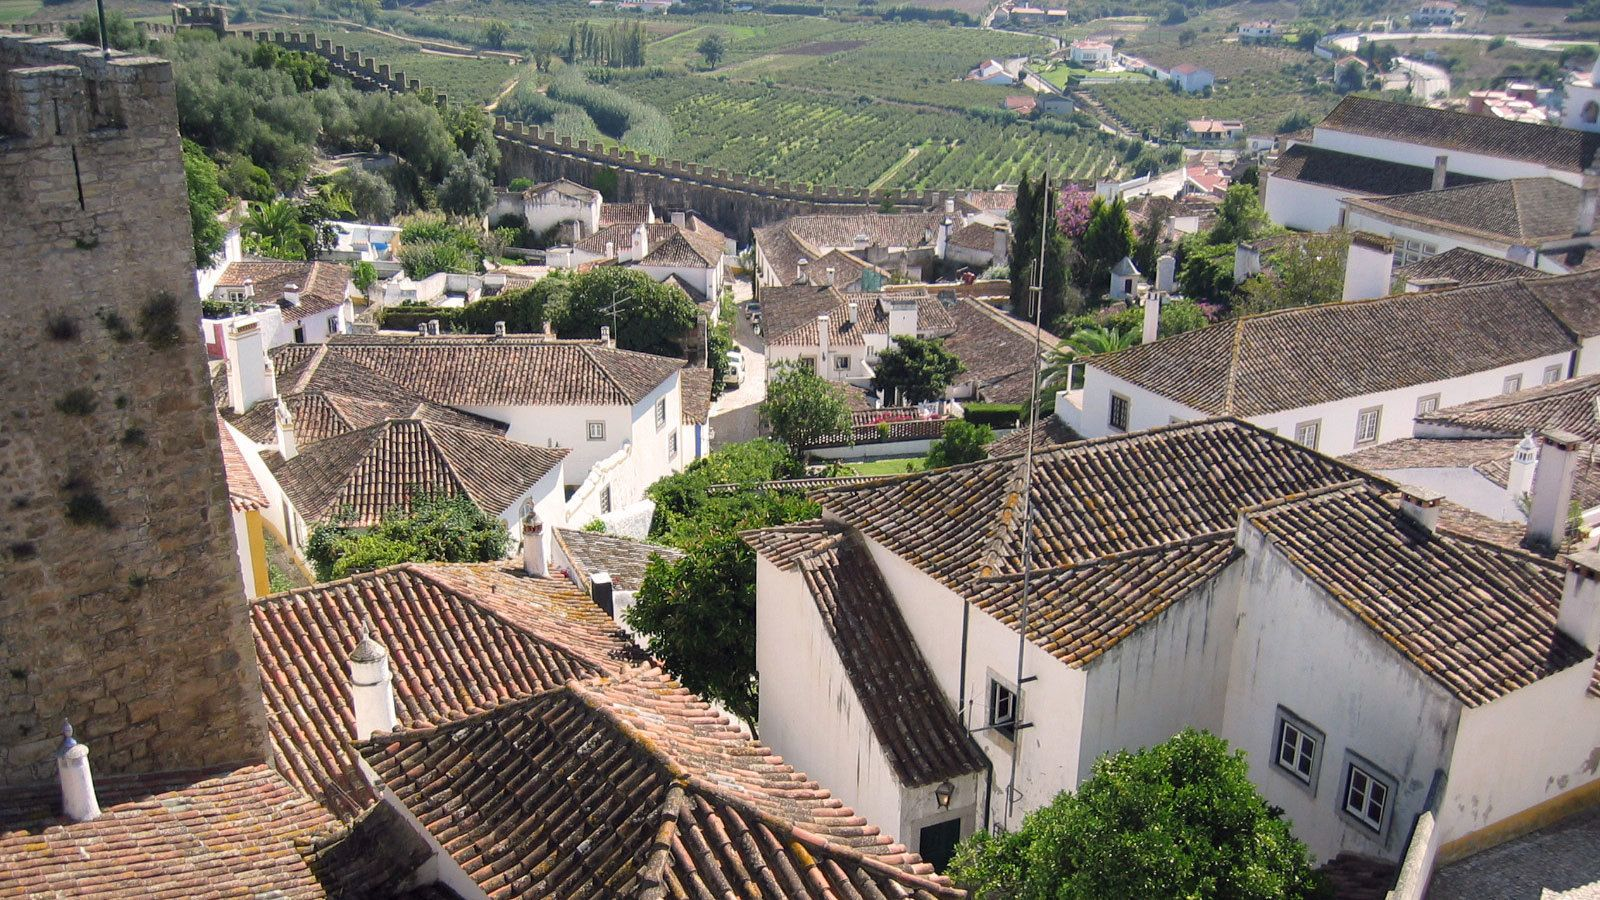 Rooftops of the city of Obidos